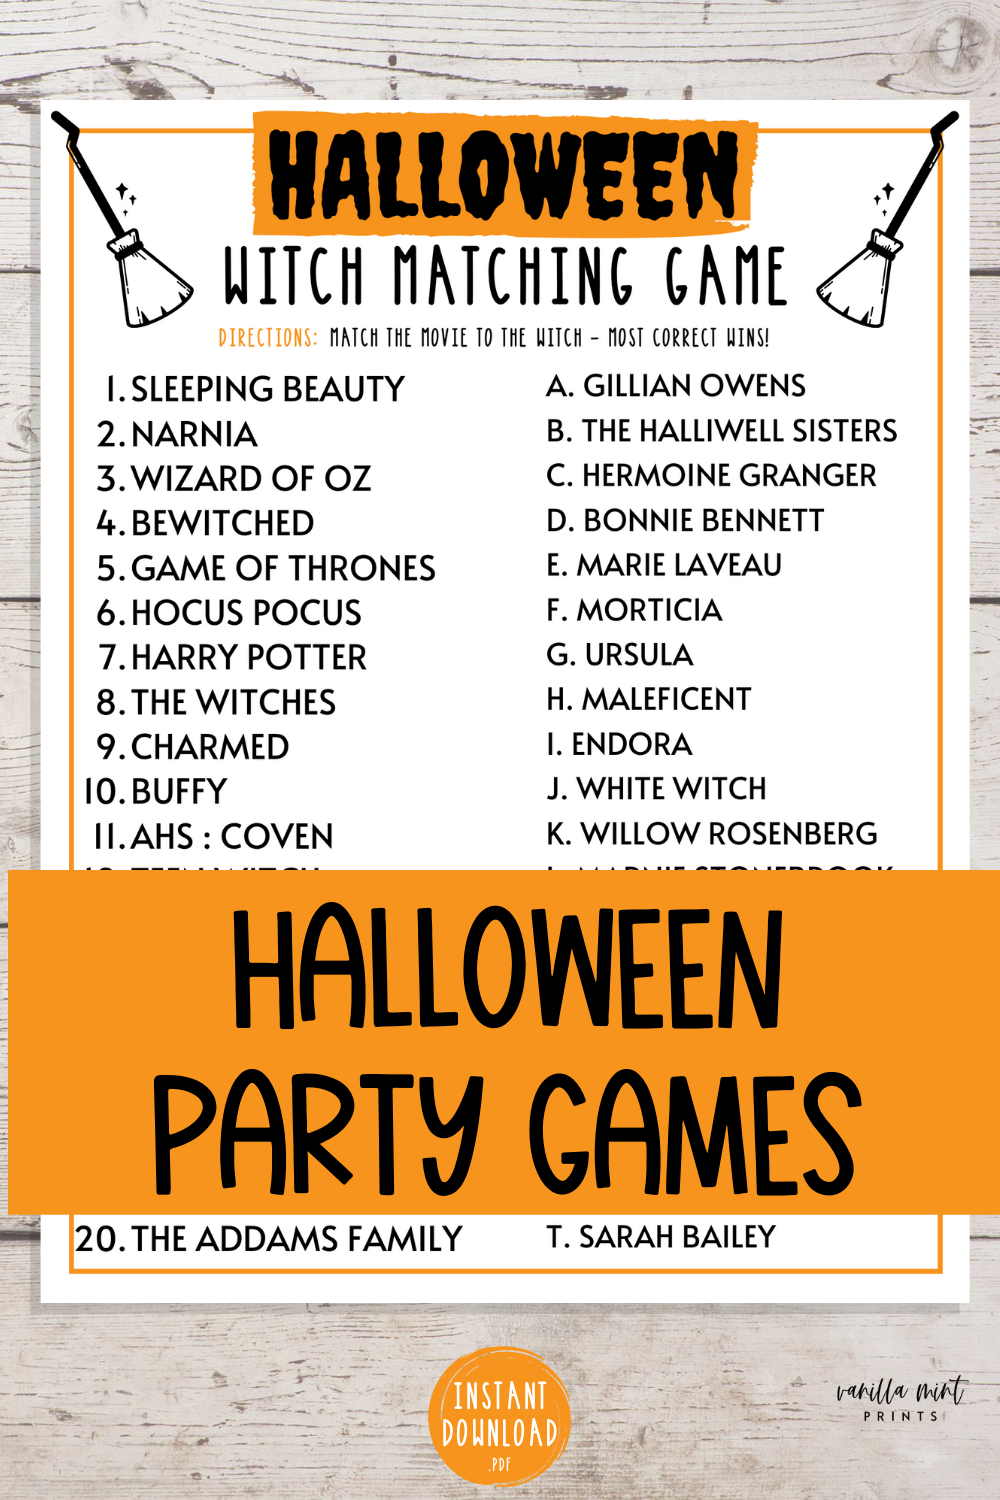 Halloween Witch Matching Game Halloween Printable Games Etsy Fun Halloween Party Games Fun Halloween Games Halloween Party Games